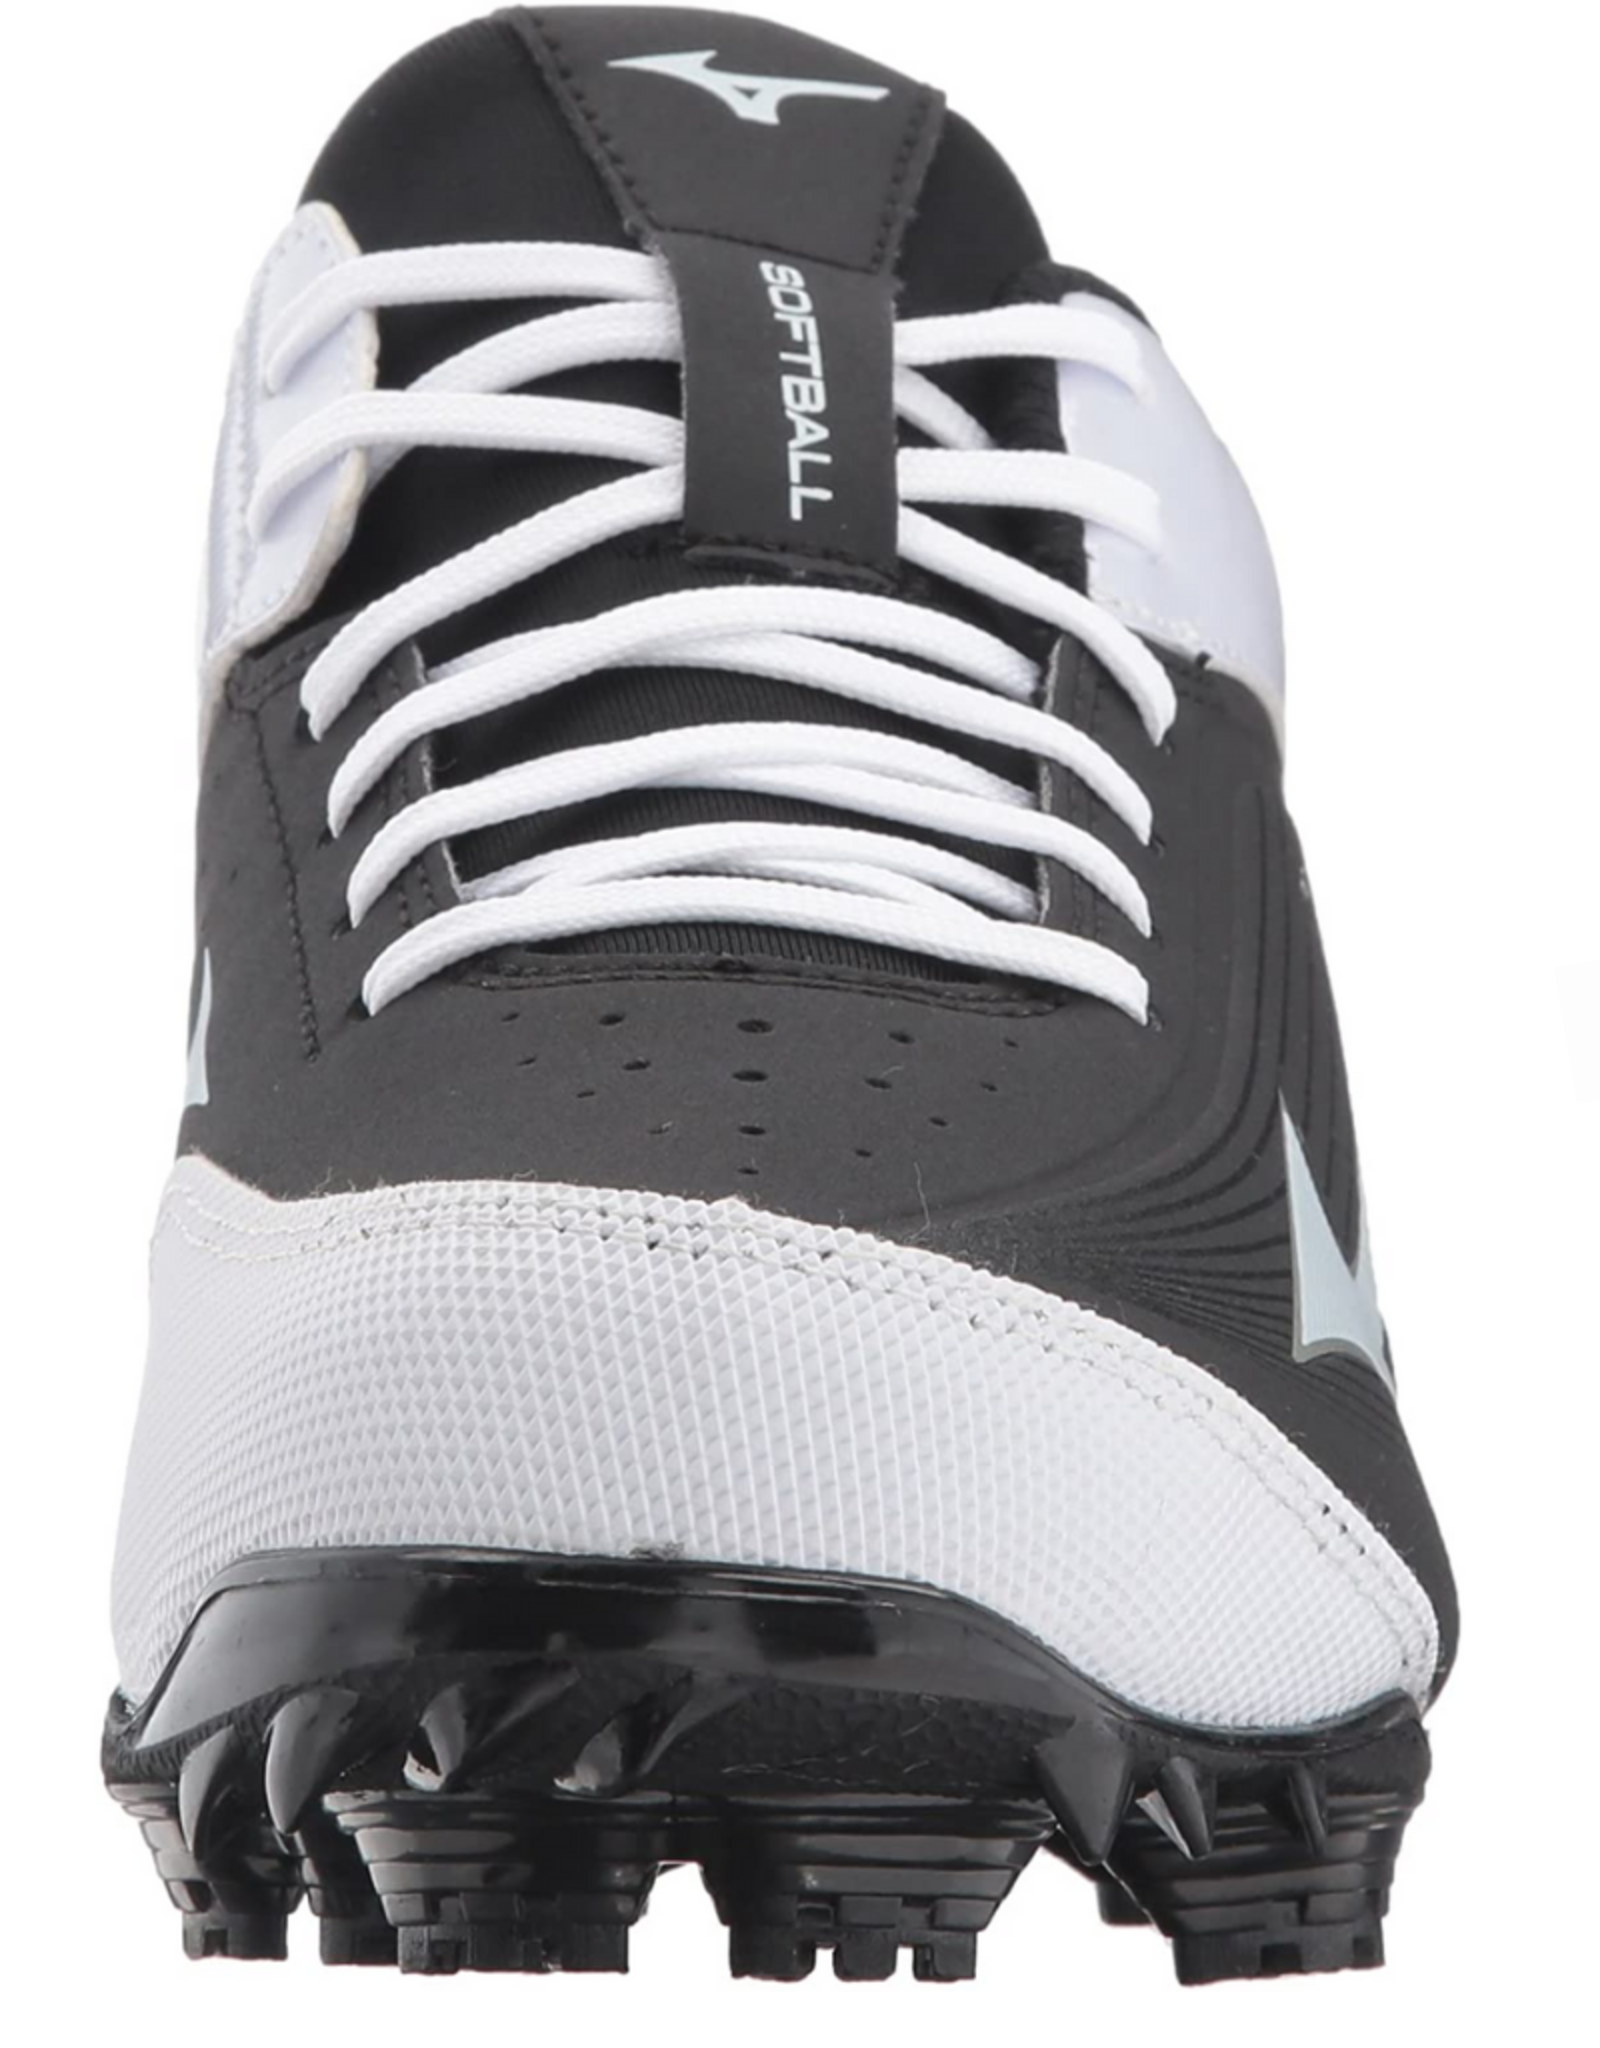 Mizuno Women's Finch Elite 3 Softball Cleat Black/White